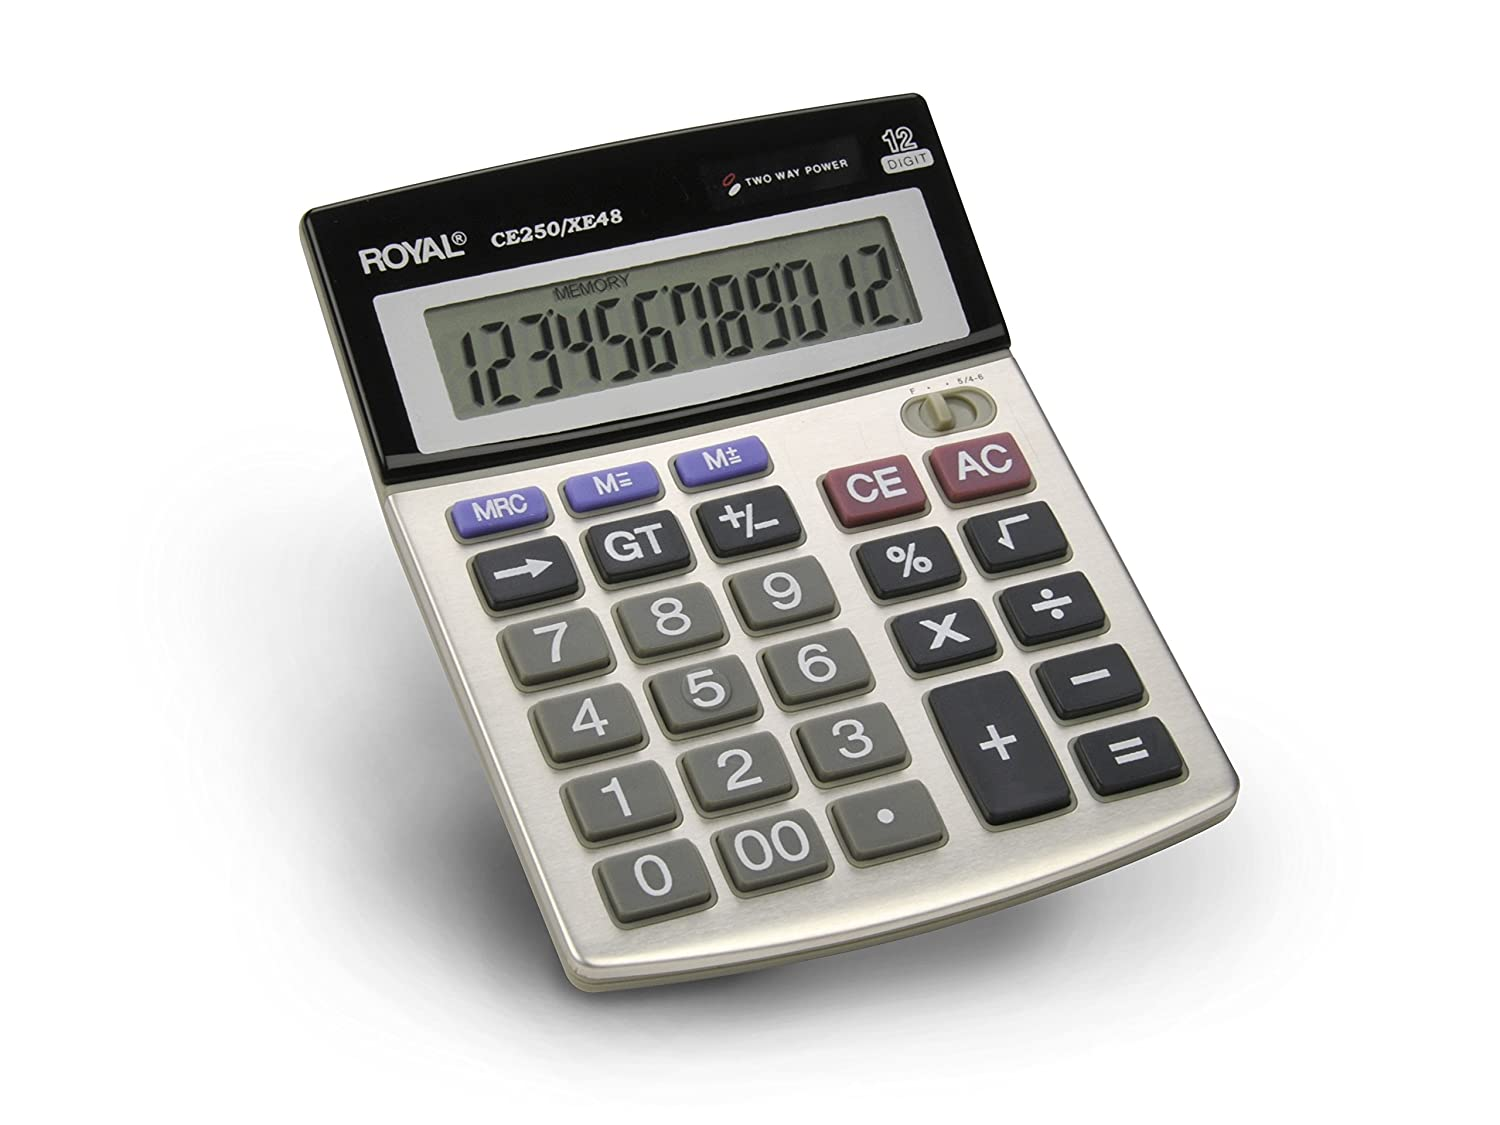 Royal CE250/XE48 Calculadora de Escritorio, Pantalla Inclinada de 12 Dígitos